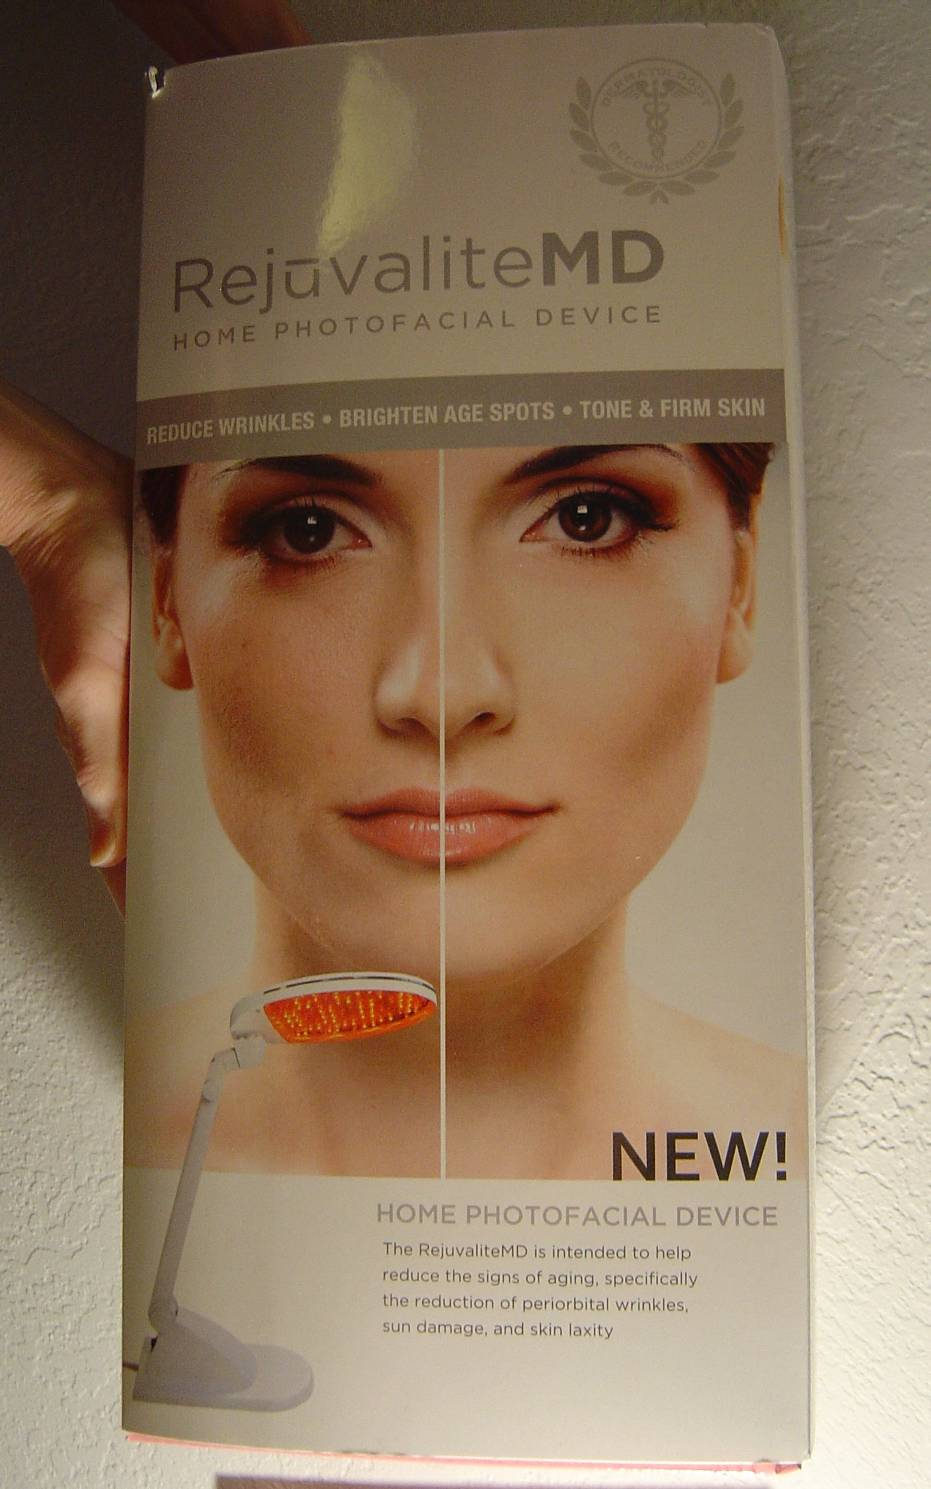 RedMD High Power LED Anti-Aging Light Therapy Hands Free Device From Trophy Skin.jpeg